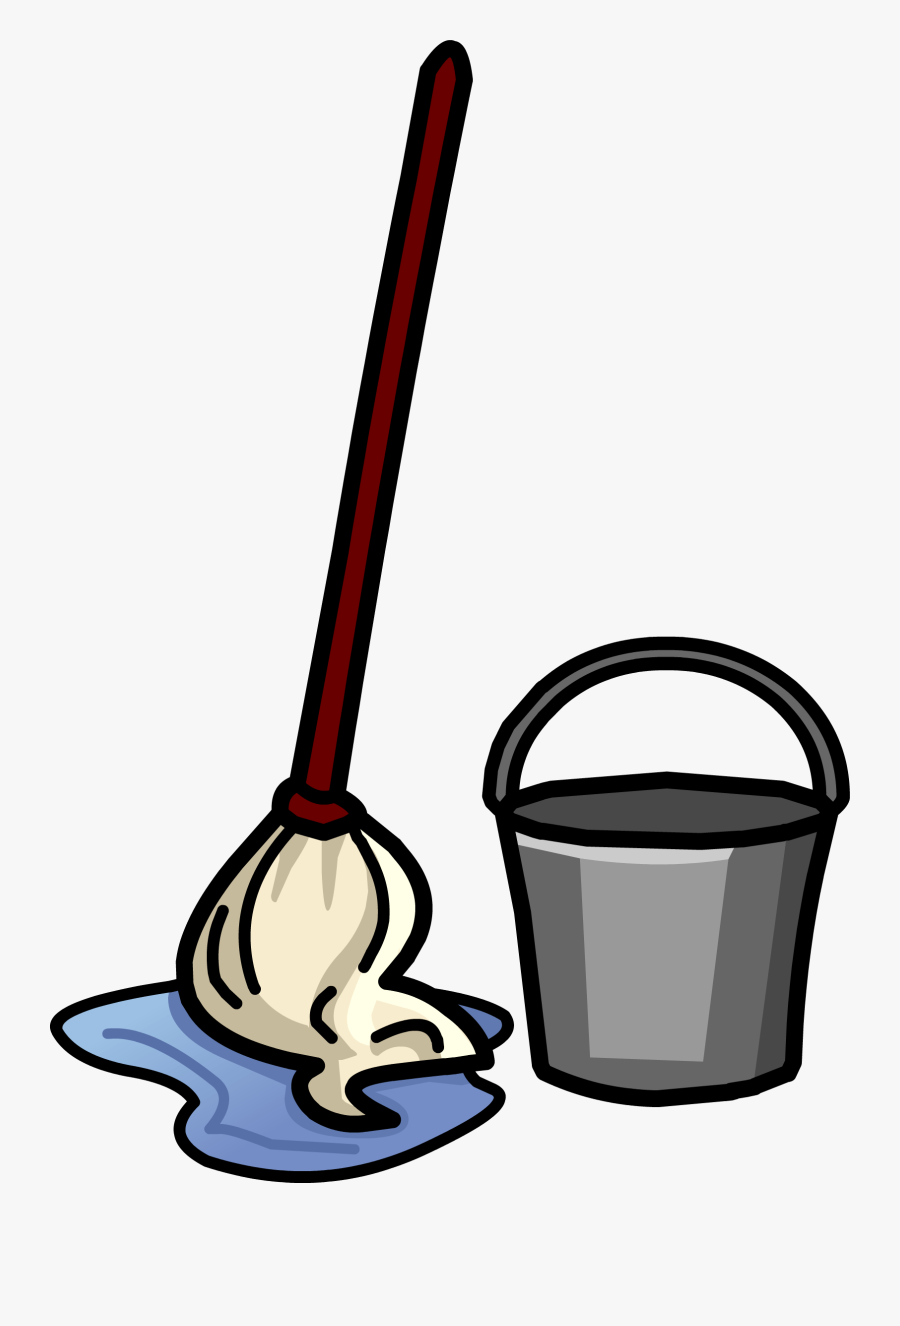 Thumb Image - Mop And Bucket Clipart, Transparent Clipart